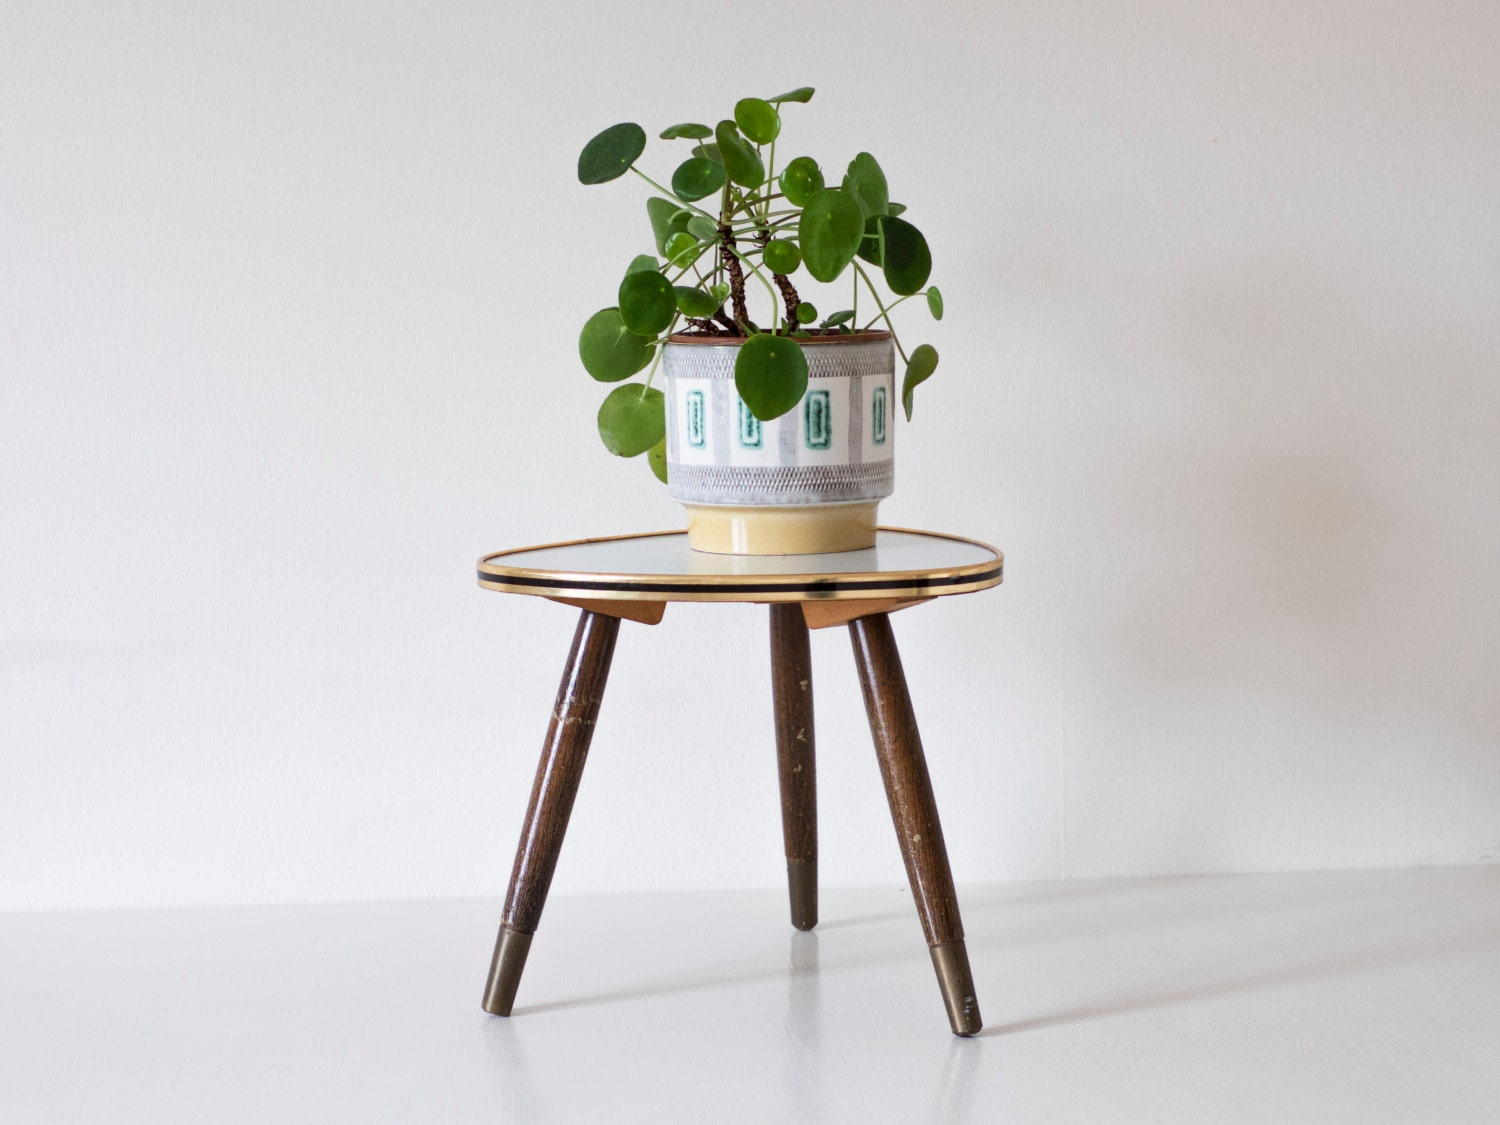 mid century modern plant stand small atomic triangular table. Black Bedroom Furniture Sets. Home Design Ideas